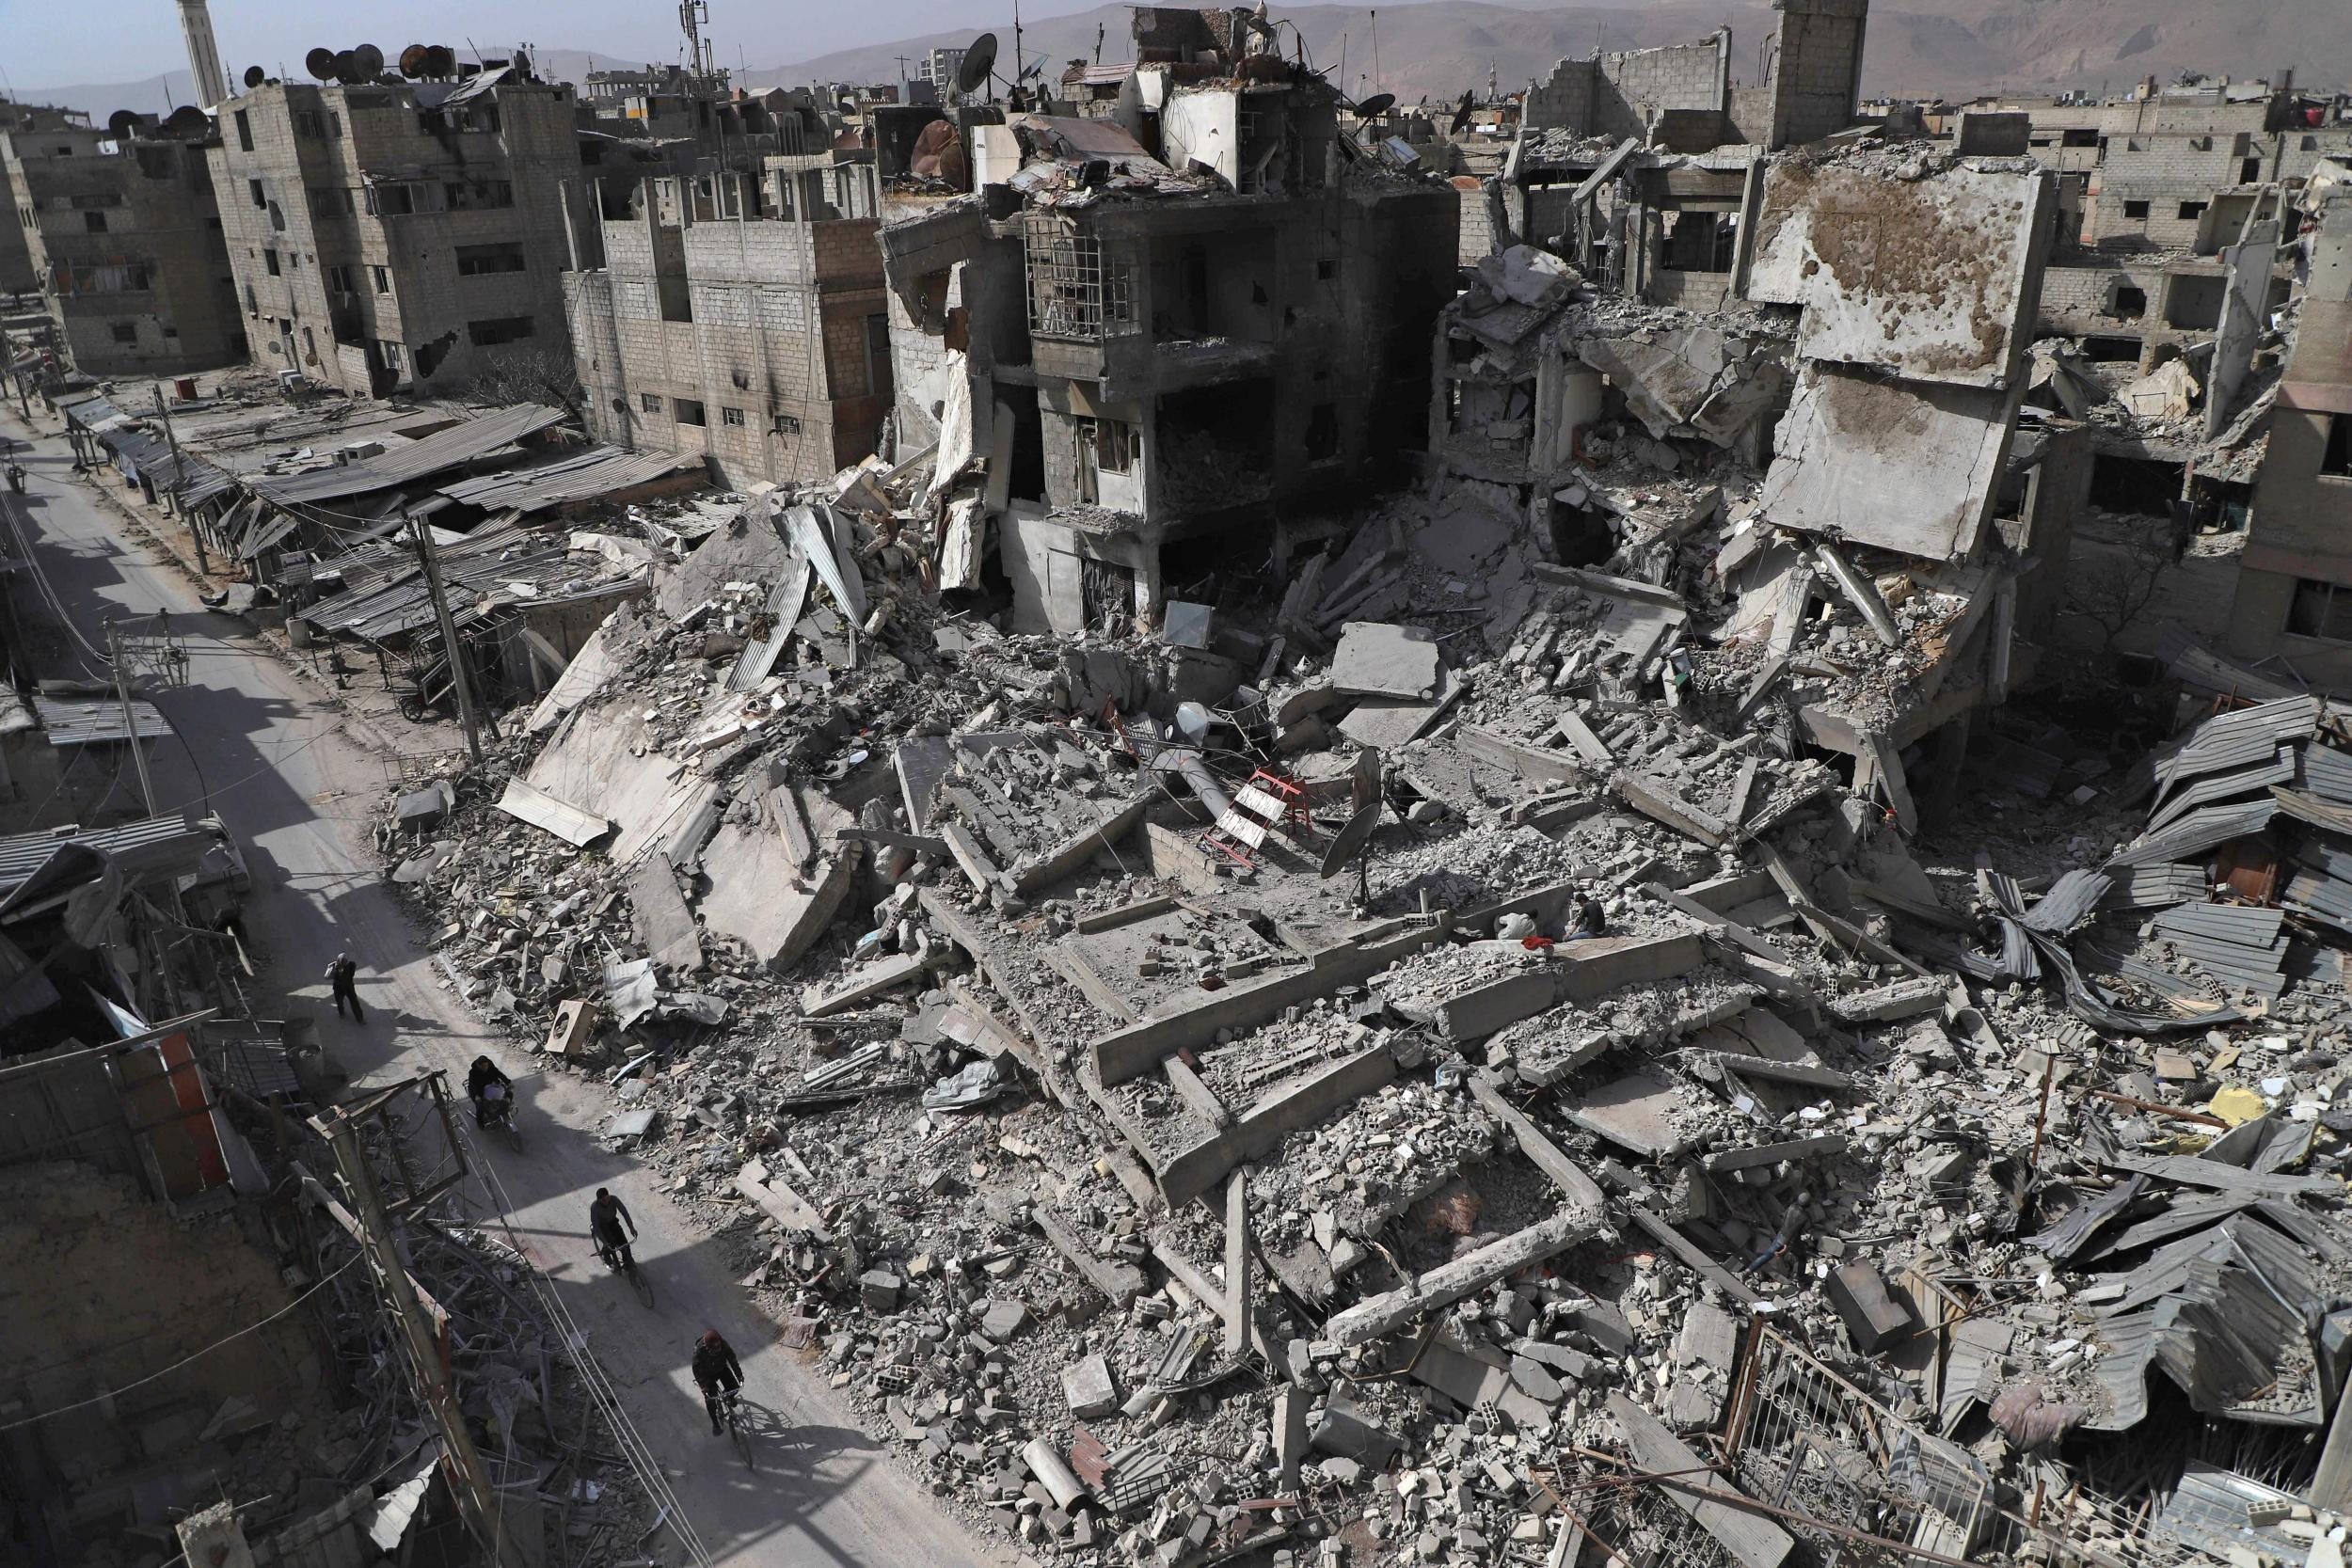 Syria conflict: 34% rise in civilian deaths caused by Russian airstrikes, report finds